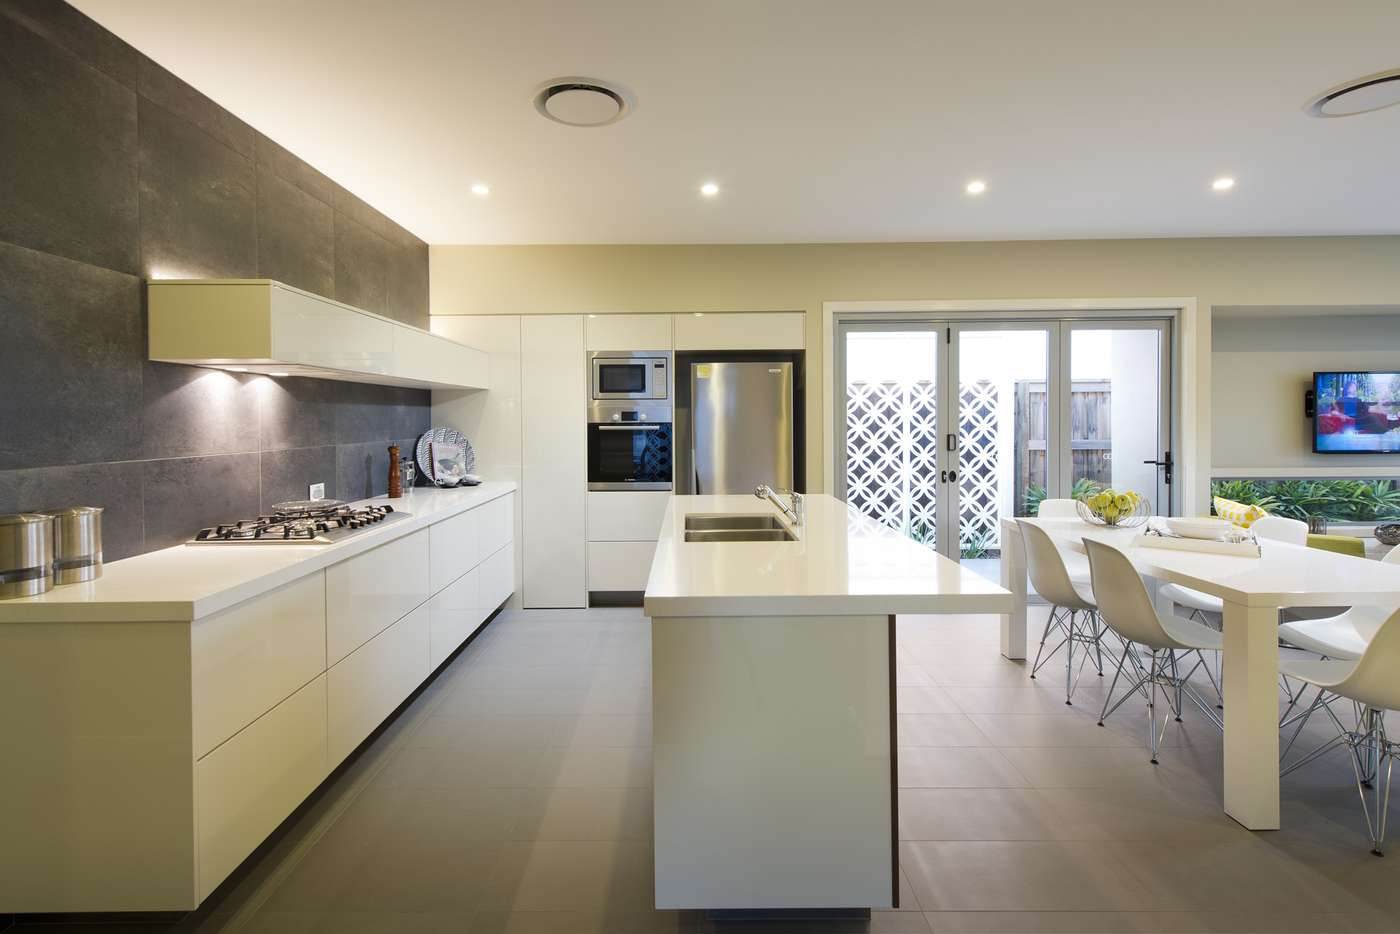 Main view of Homely house listing, 8 Azure St, Caloundra West QLD 4551